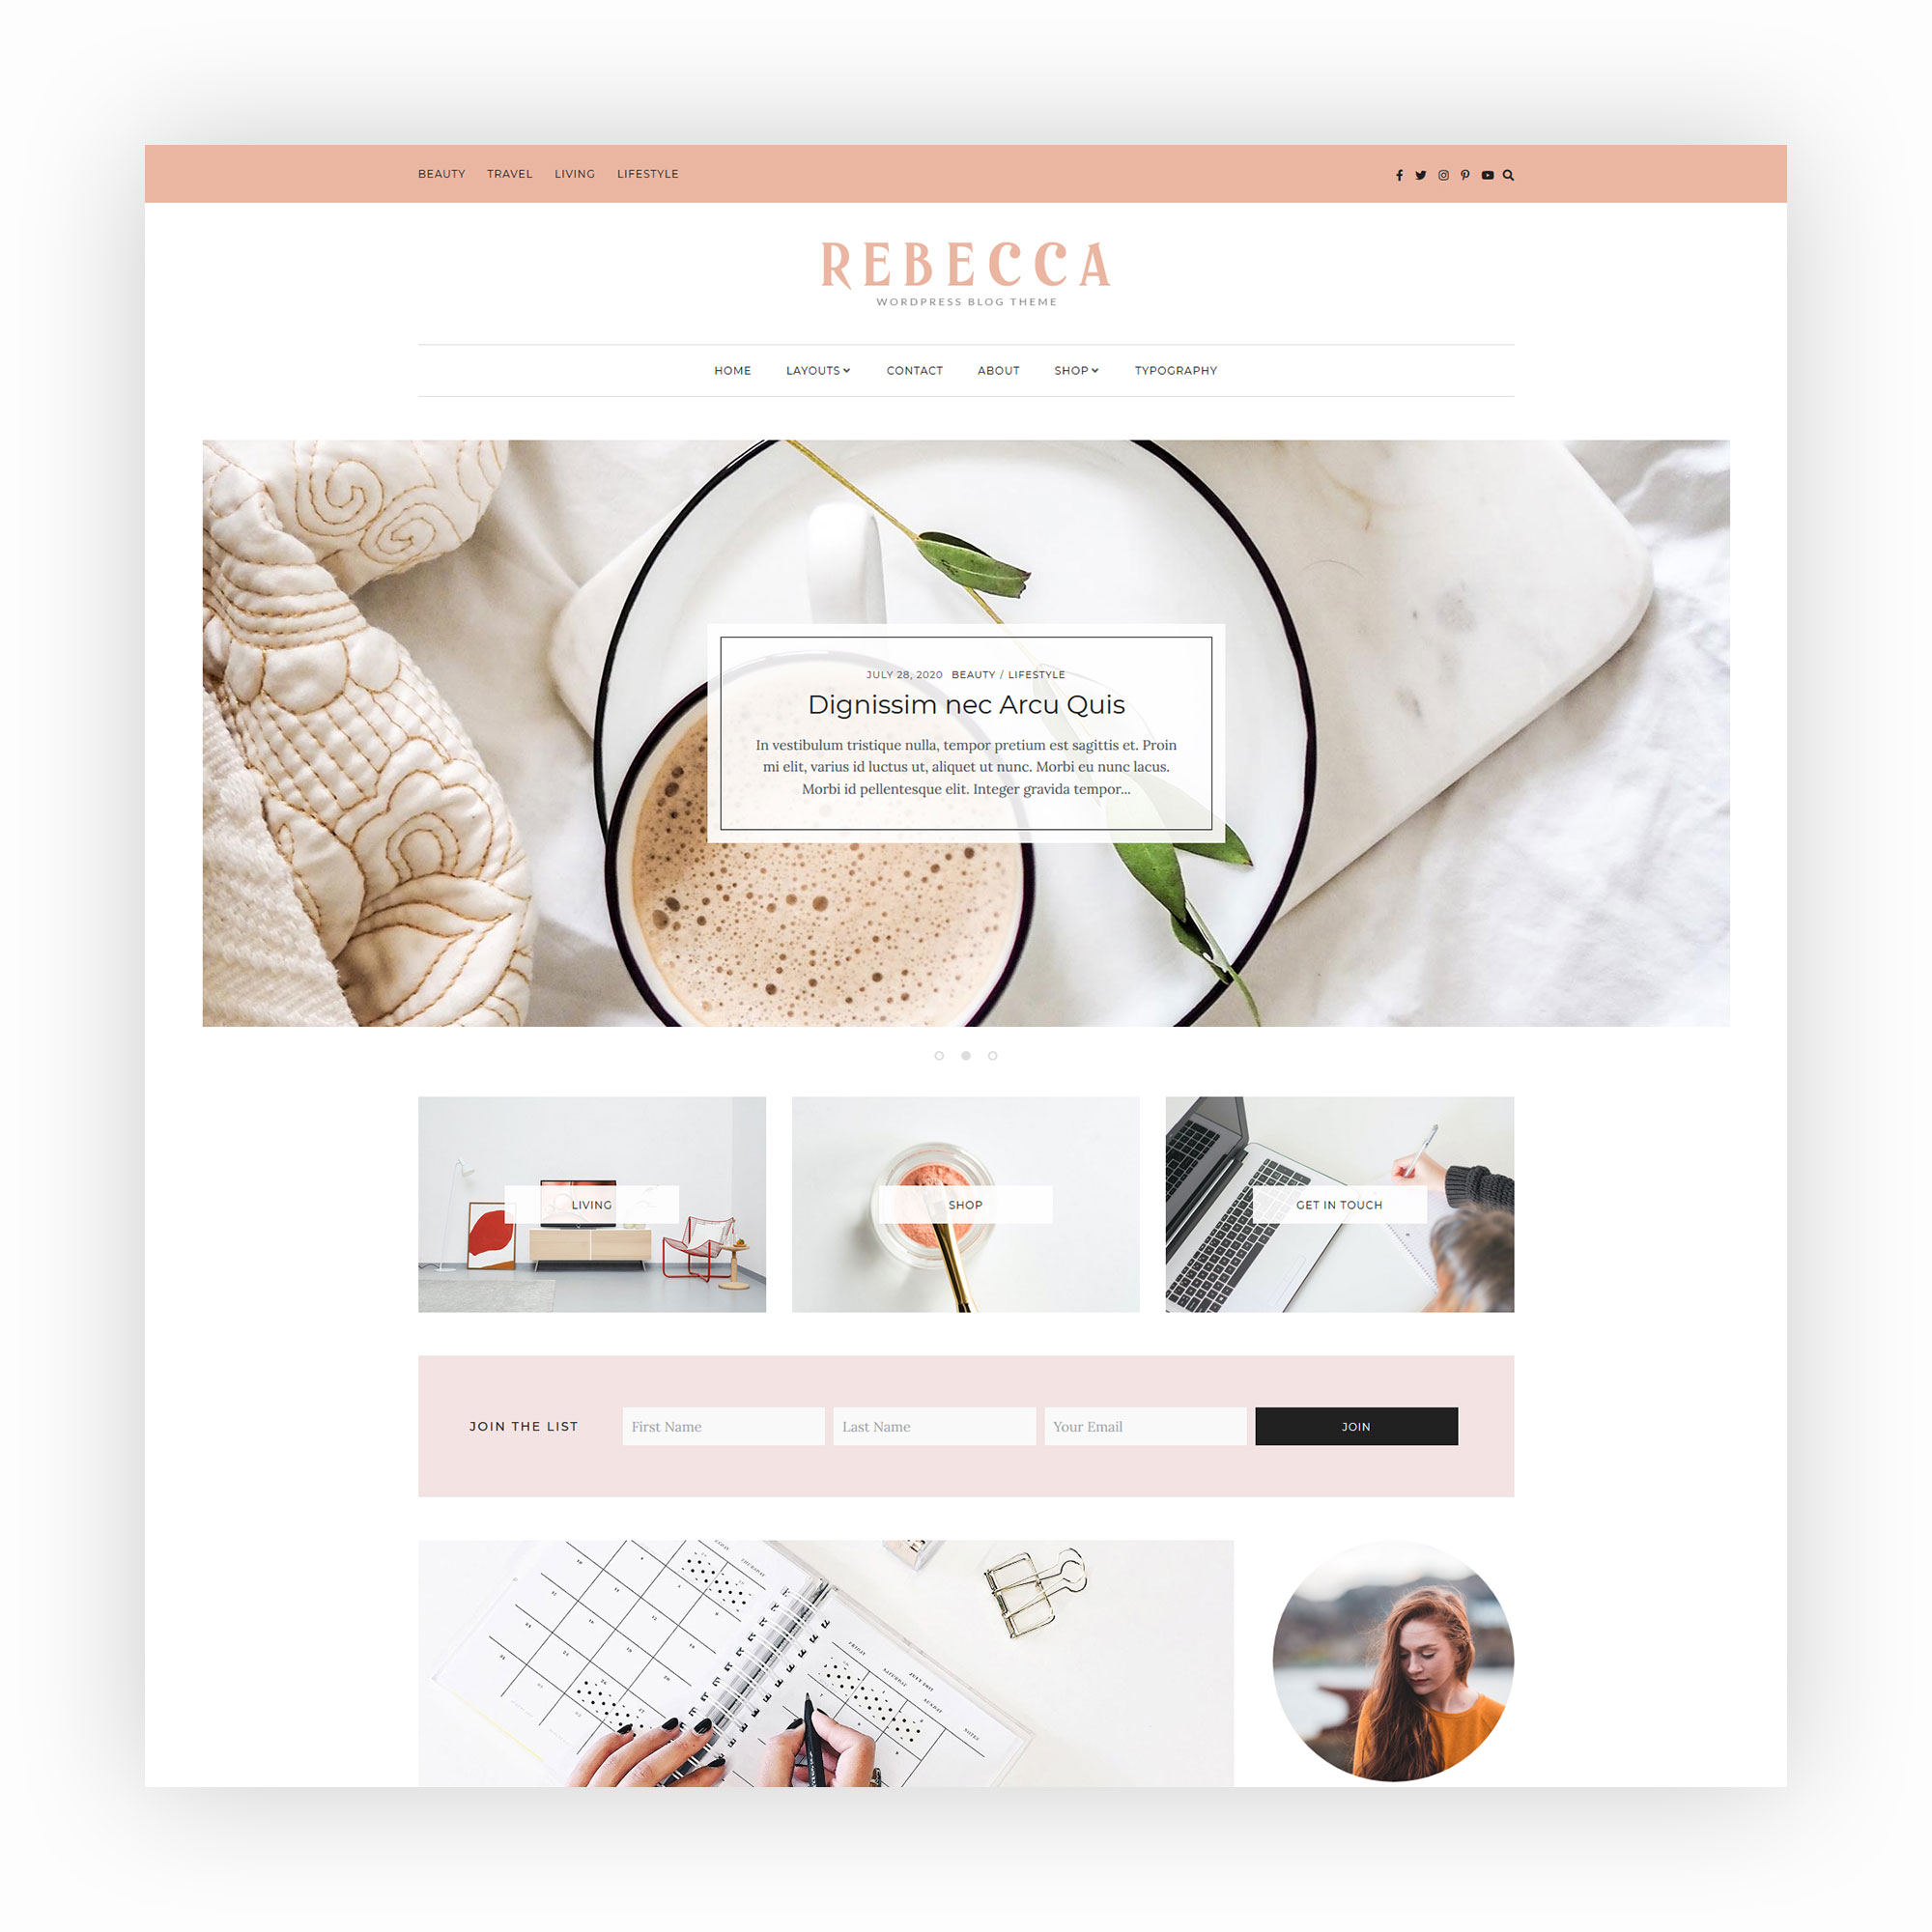 rebecca-wordpress-theme.jpg